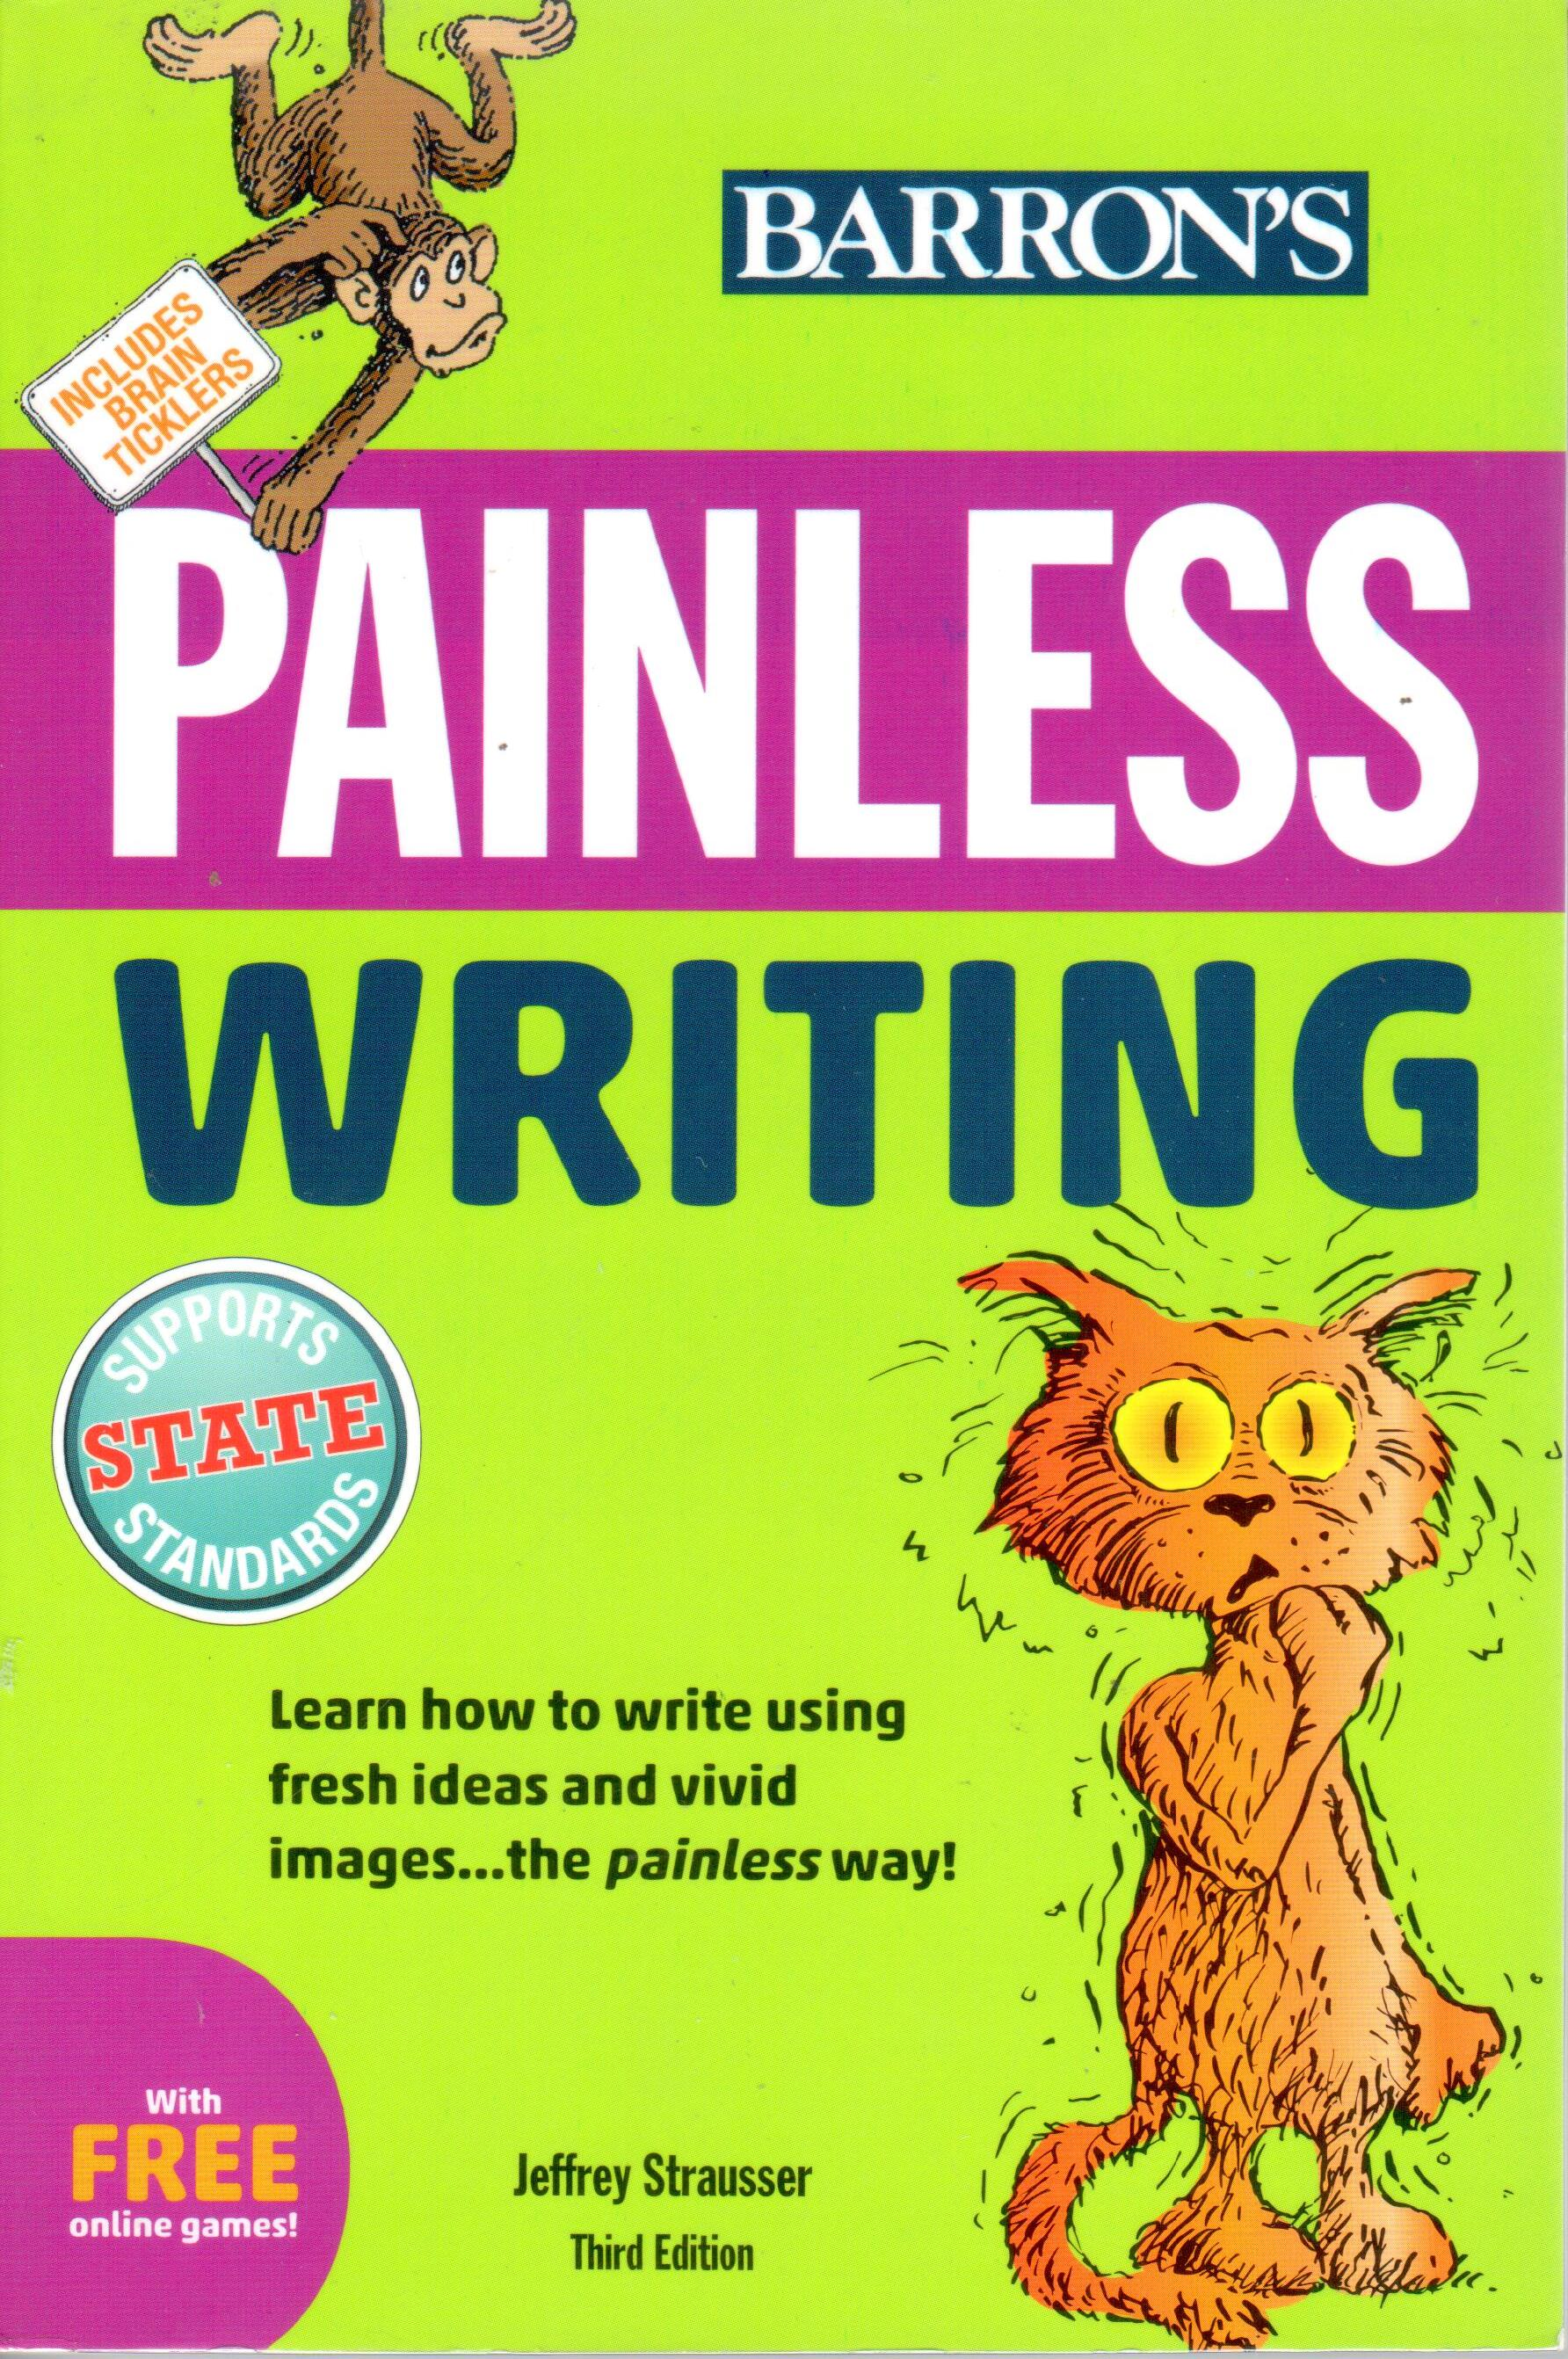 Painless Writing (Third Edition)